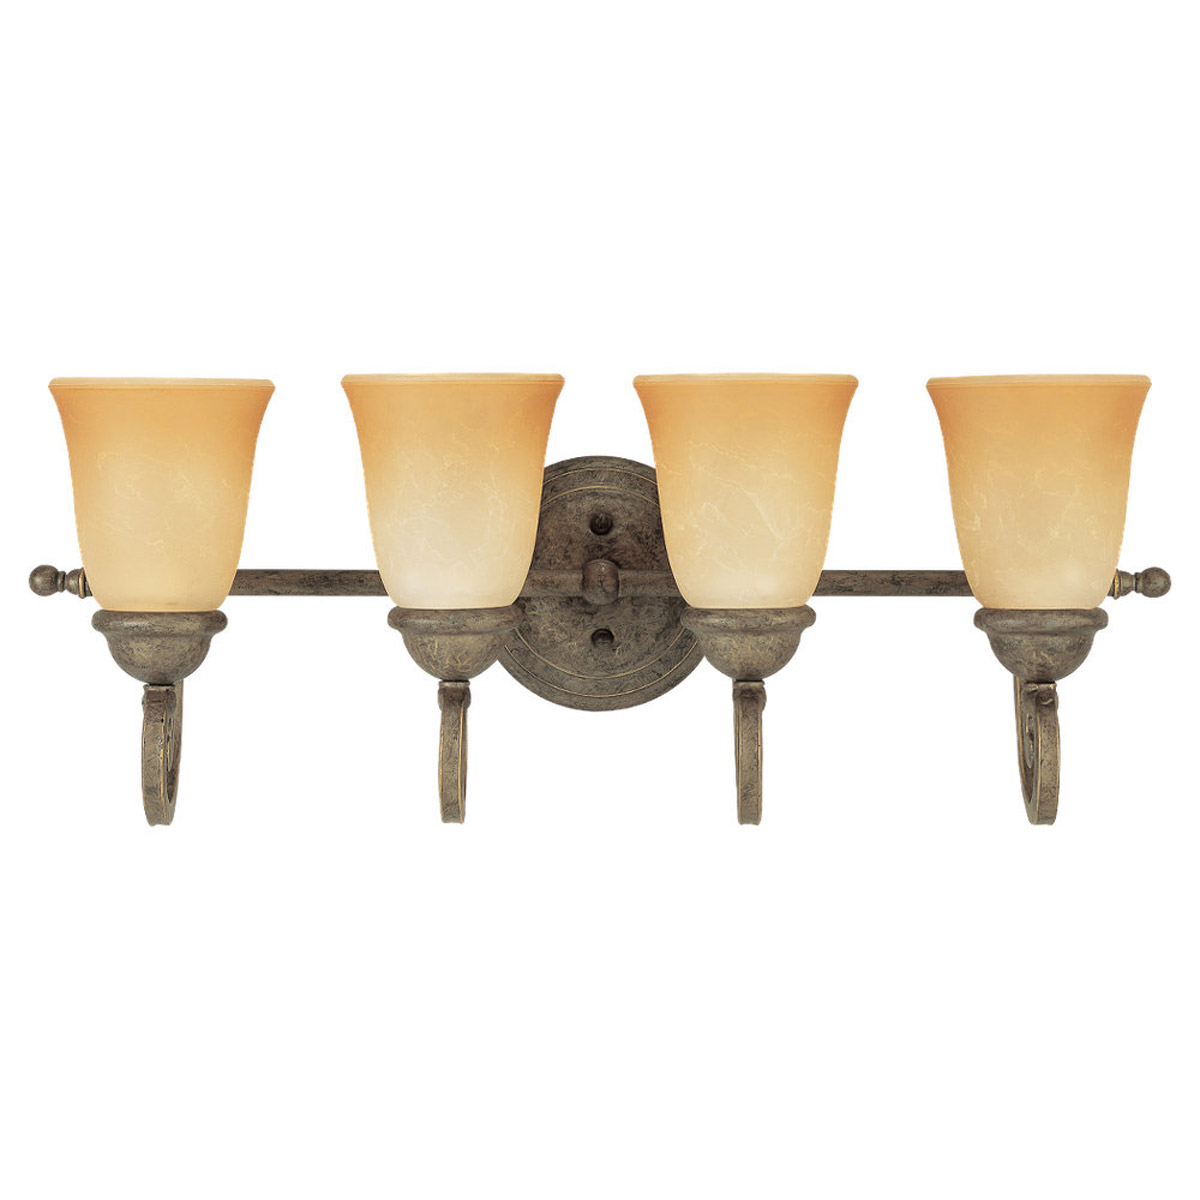 Sea Gull Lighting Brandywine 4 Light Bath Vanity in Antique Bronze 44432-71